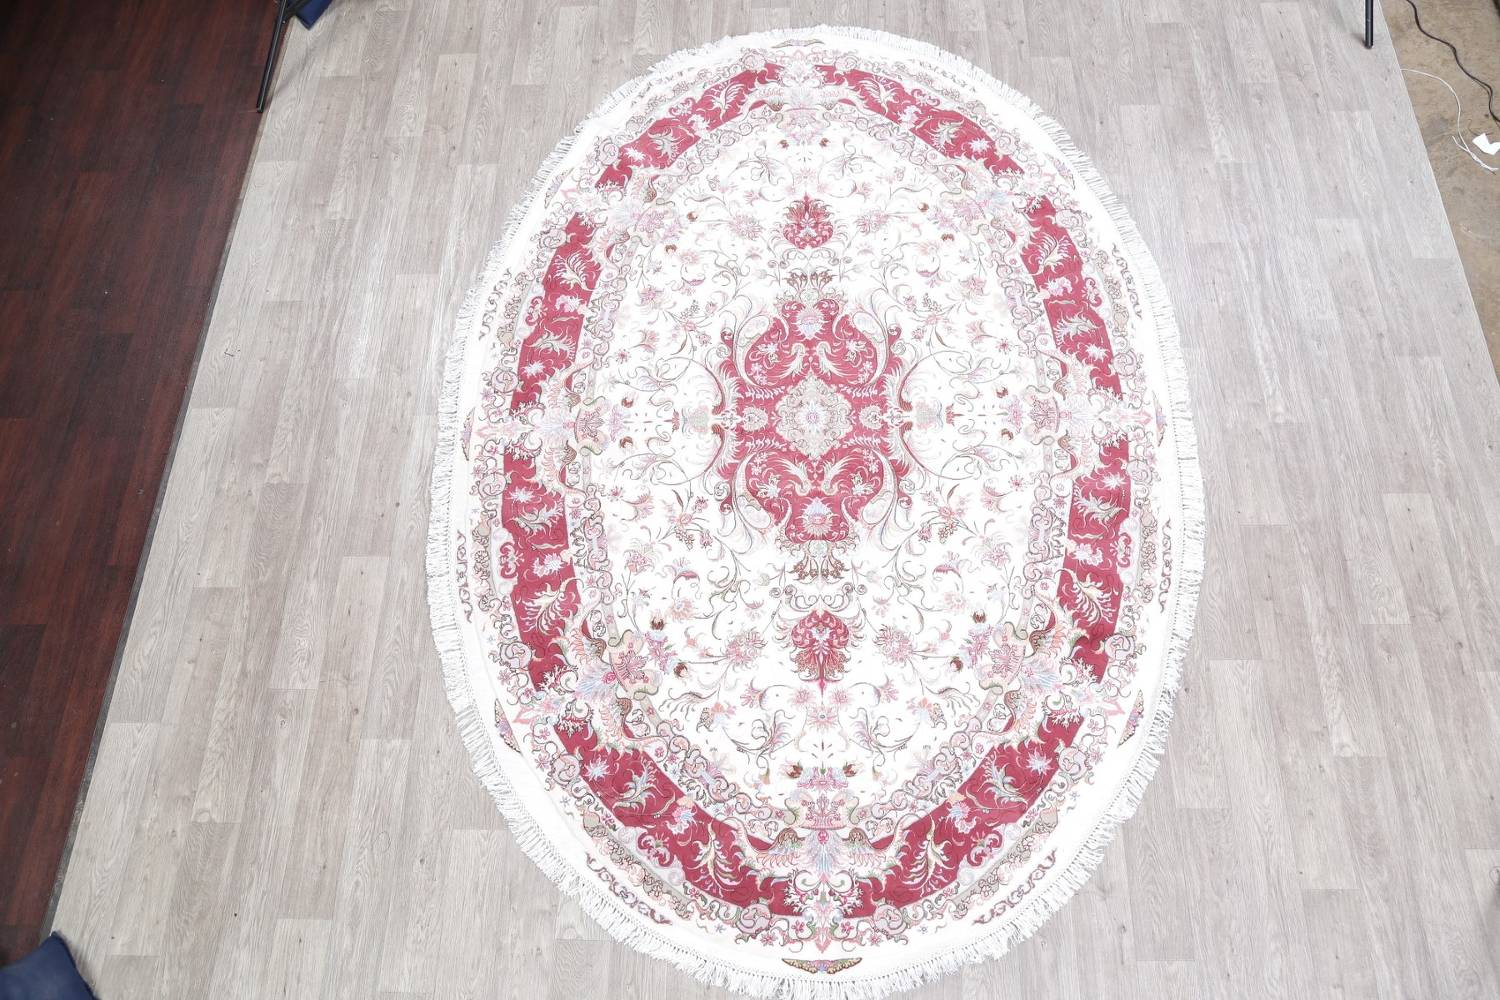 Vegetable Dye Floral Ivory Tabriz Persian Hand-Knotted Area Rug 7x10 image 2